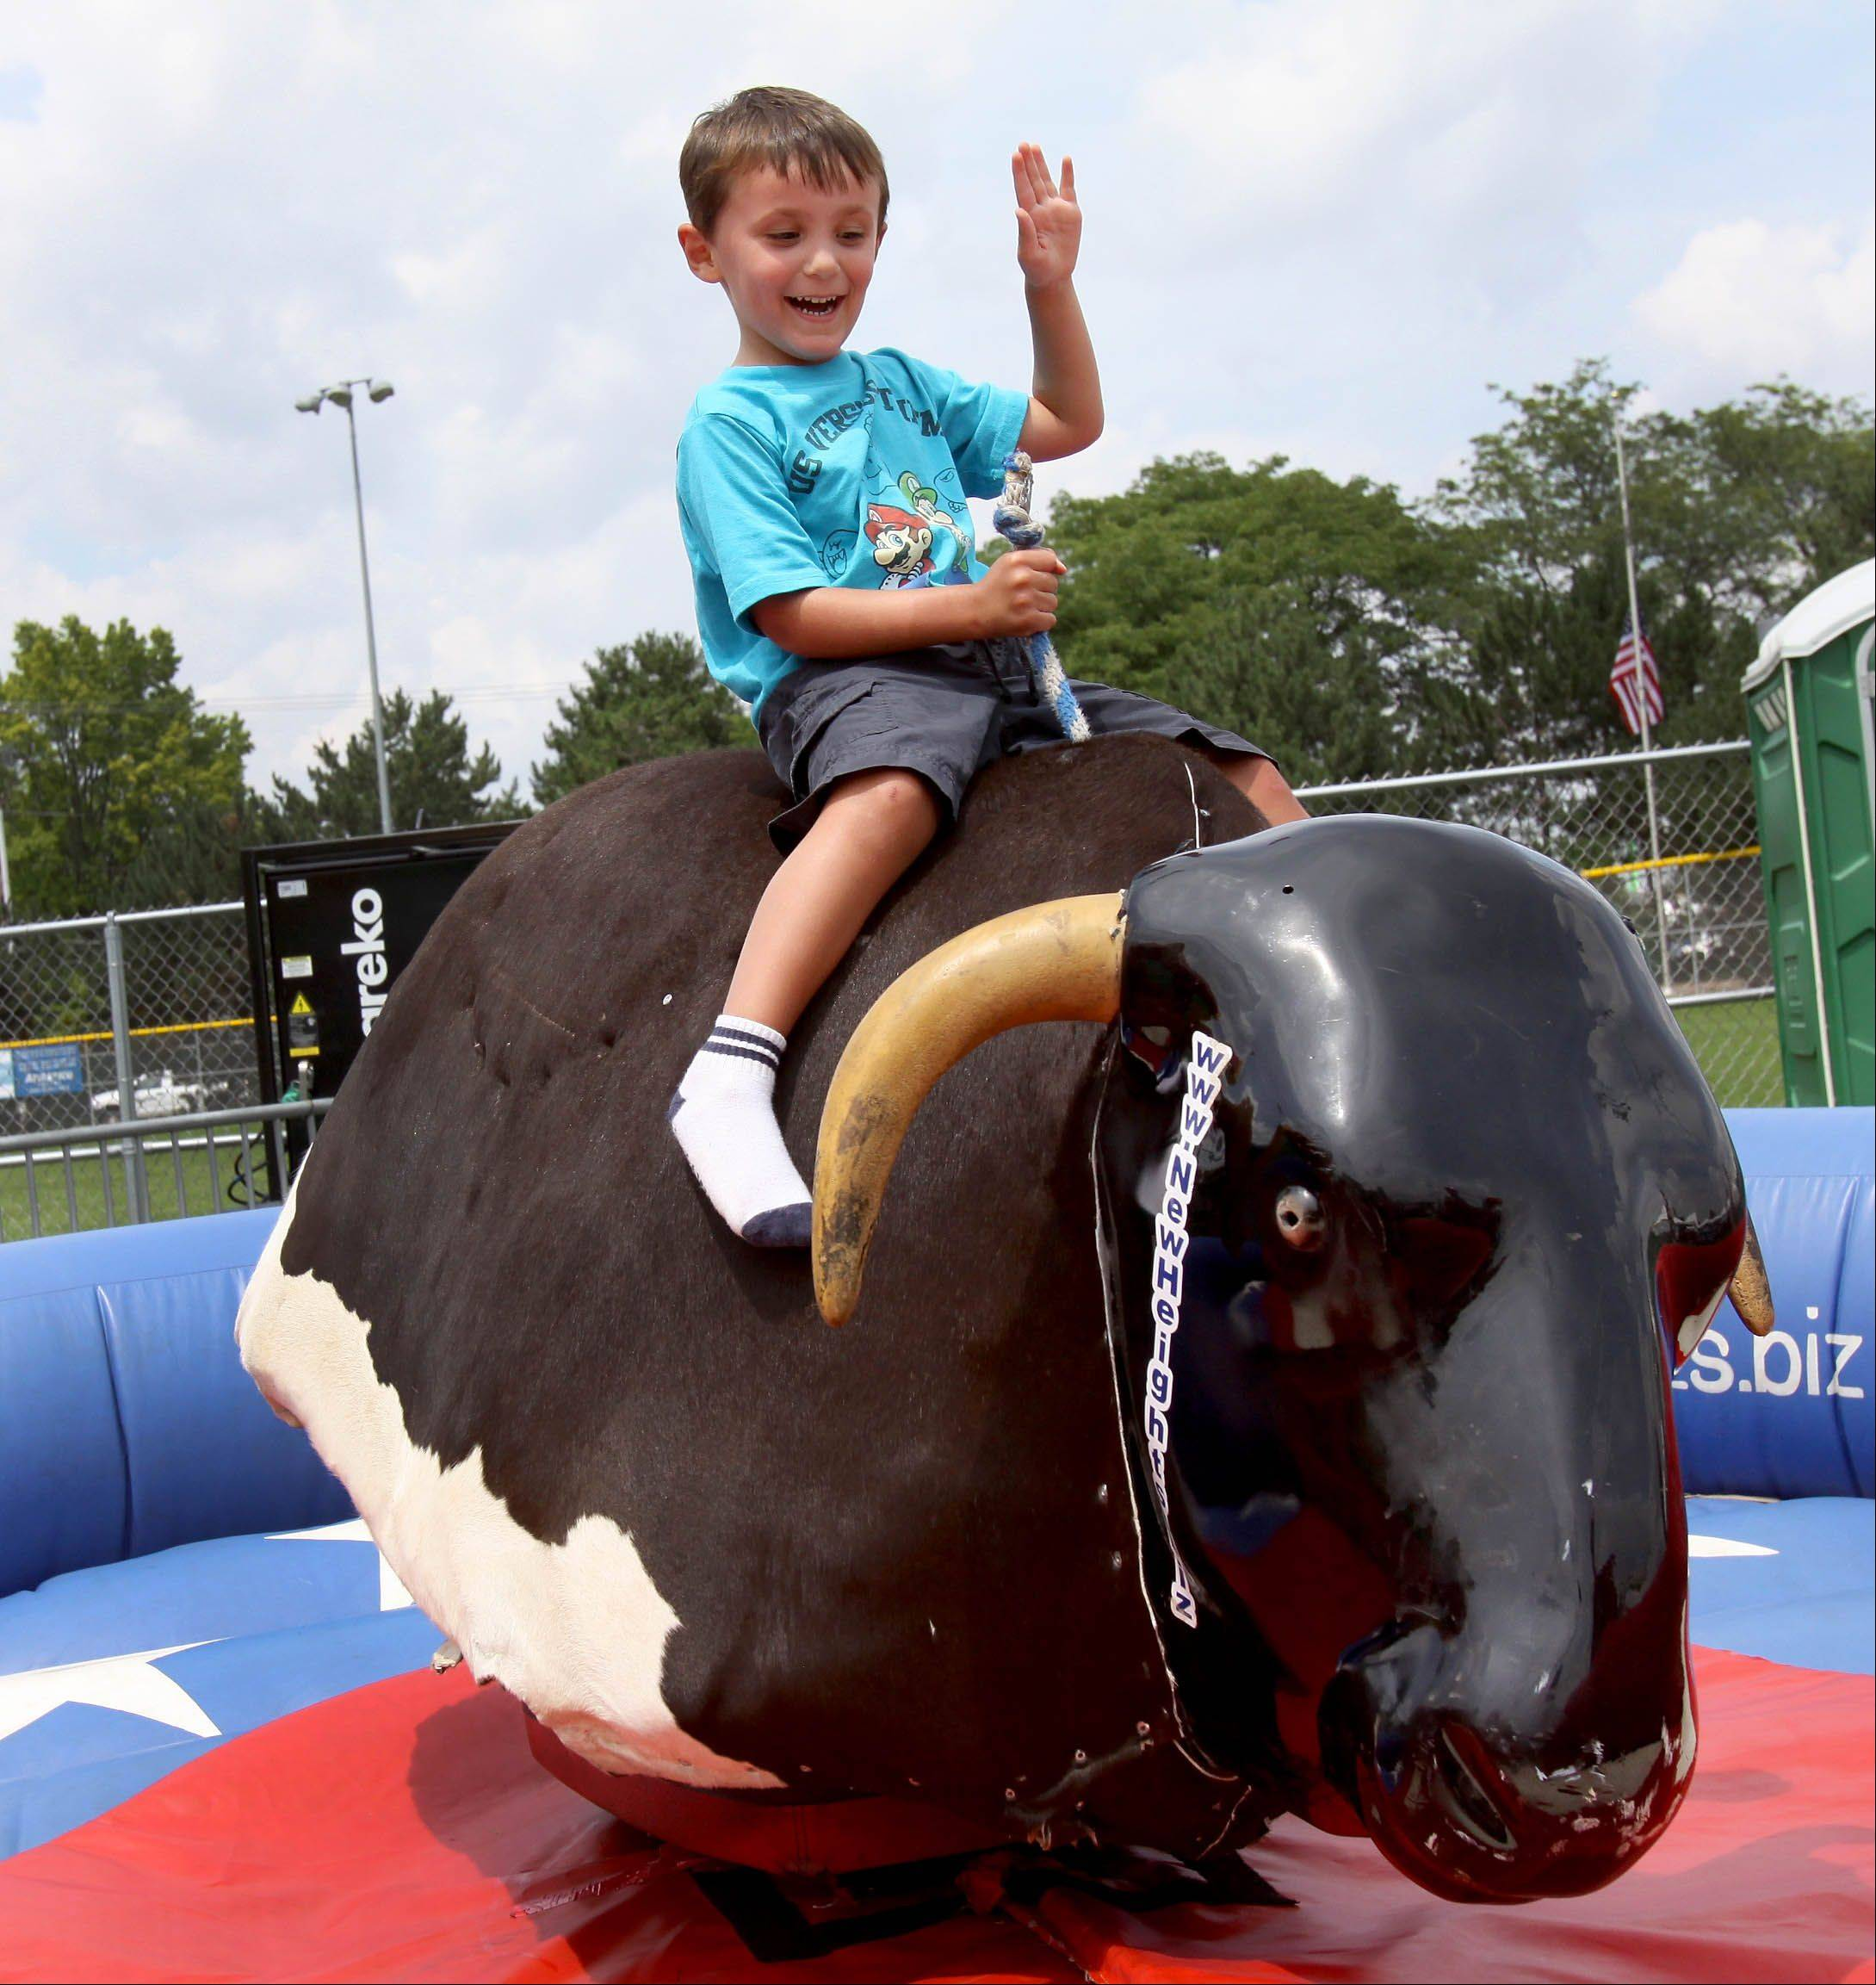 Jake Wittman, 4 of Naperville, takes a ride on the Newhieghts Mechanical Bull, one of the activities at Ribfest in Naperville on Thursday.